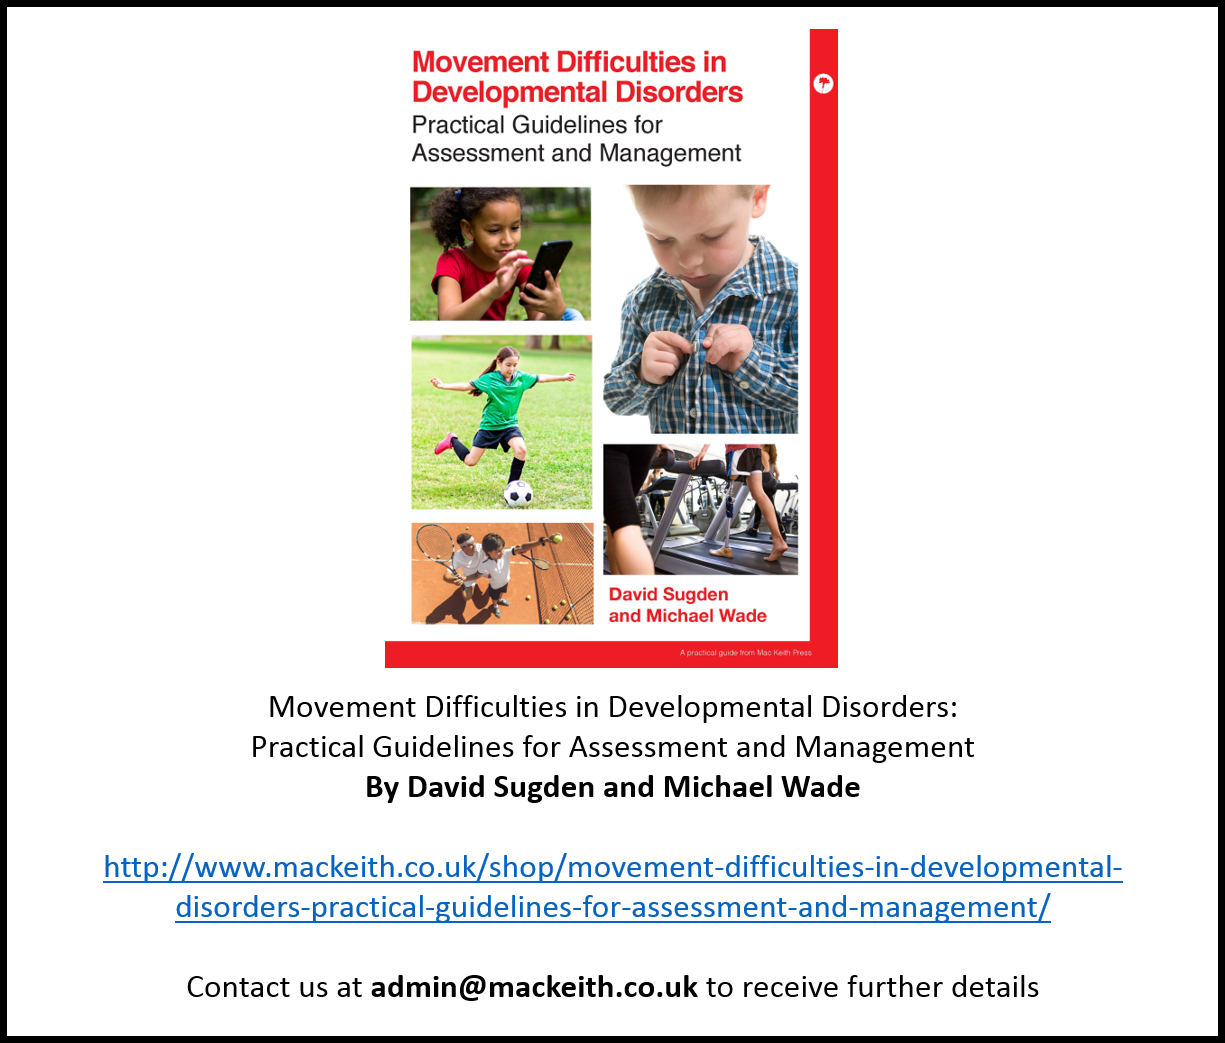 Movement Difficulties in Developmental Disorders